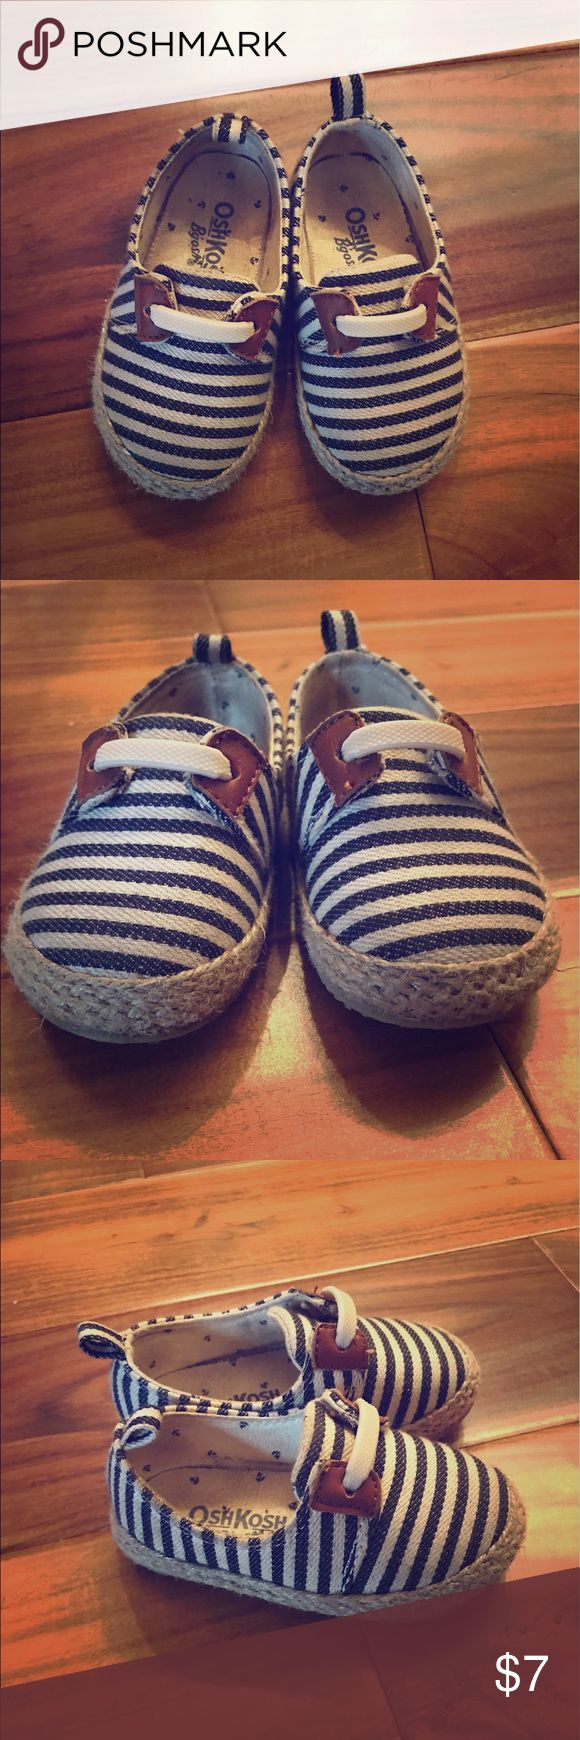 Blue and white striped tennis shoes Replaced shoe strings w elastic shoe bands to make easier for child to slip on OshKosh B'gosh Shoes